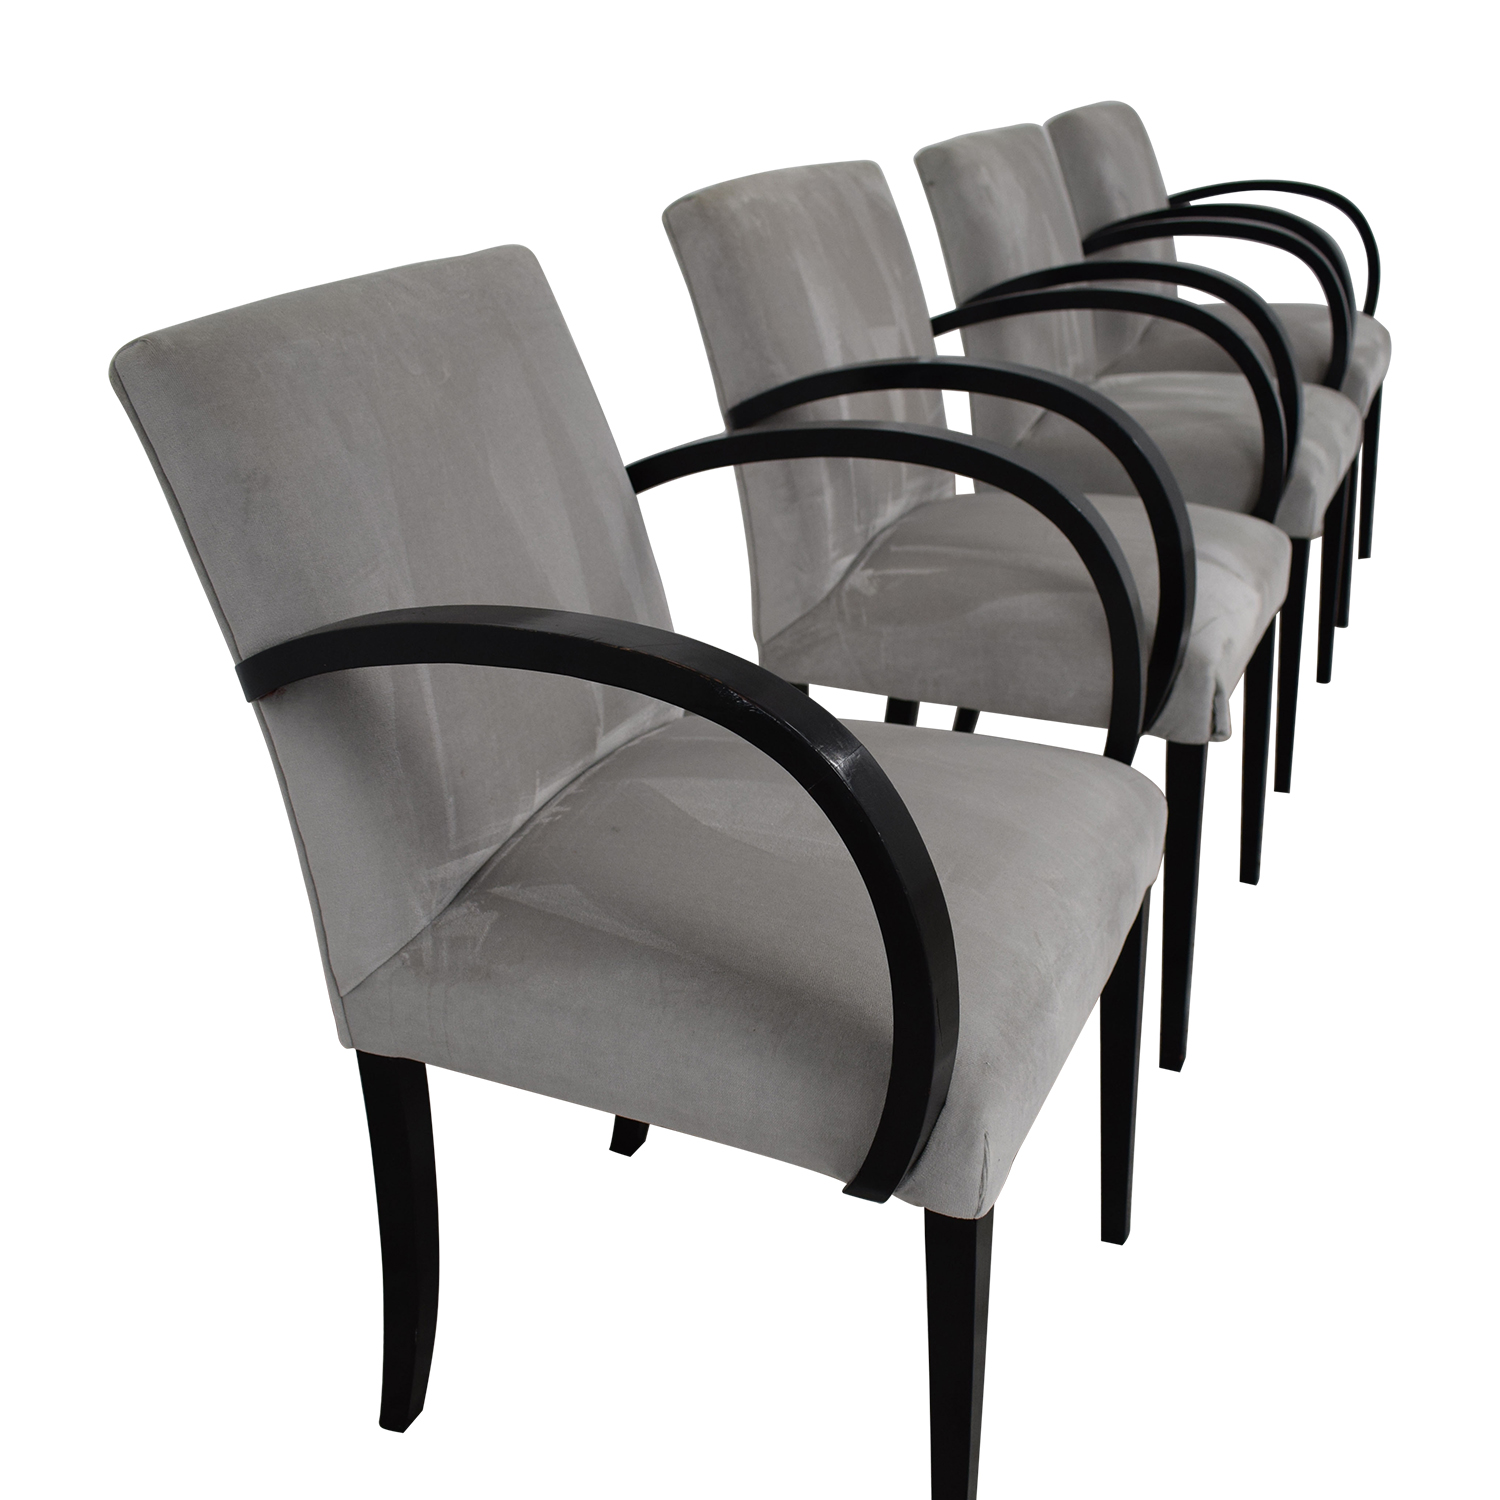 76 Off French Art Deco Chairs Chairs